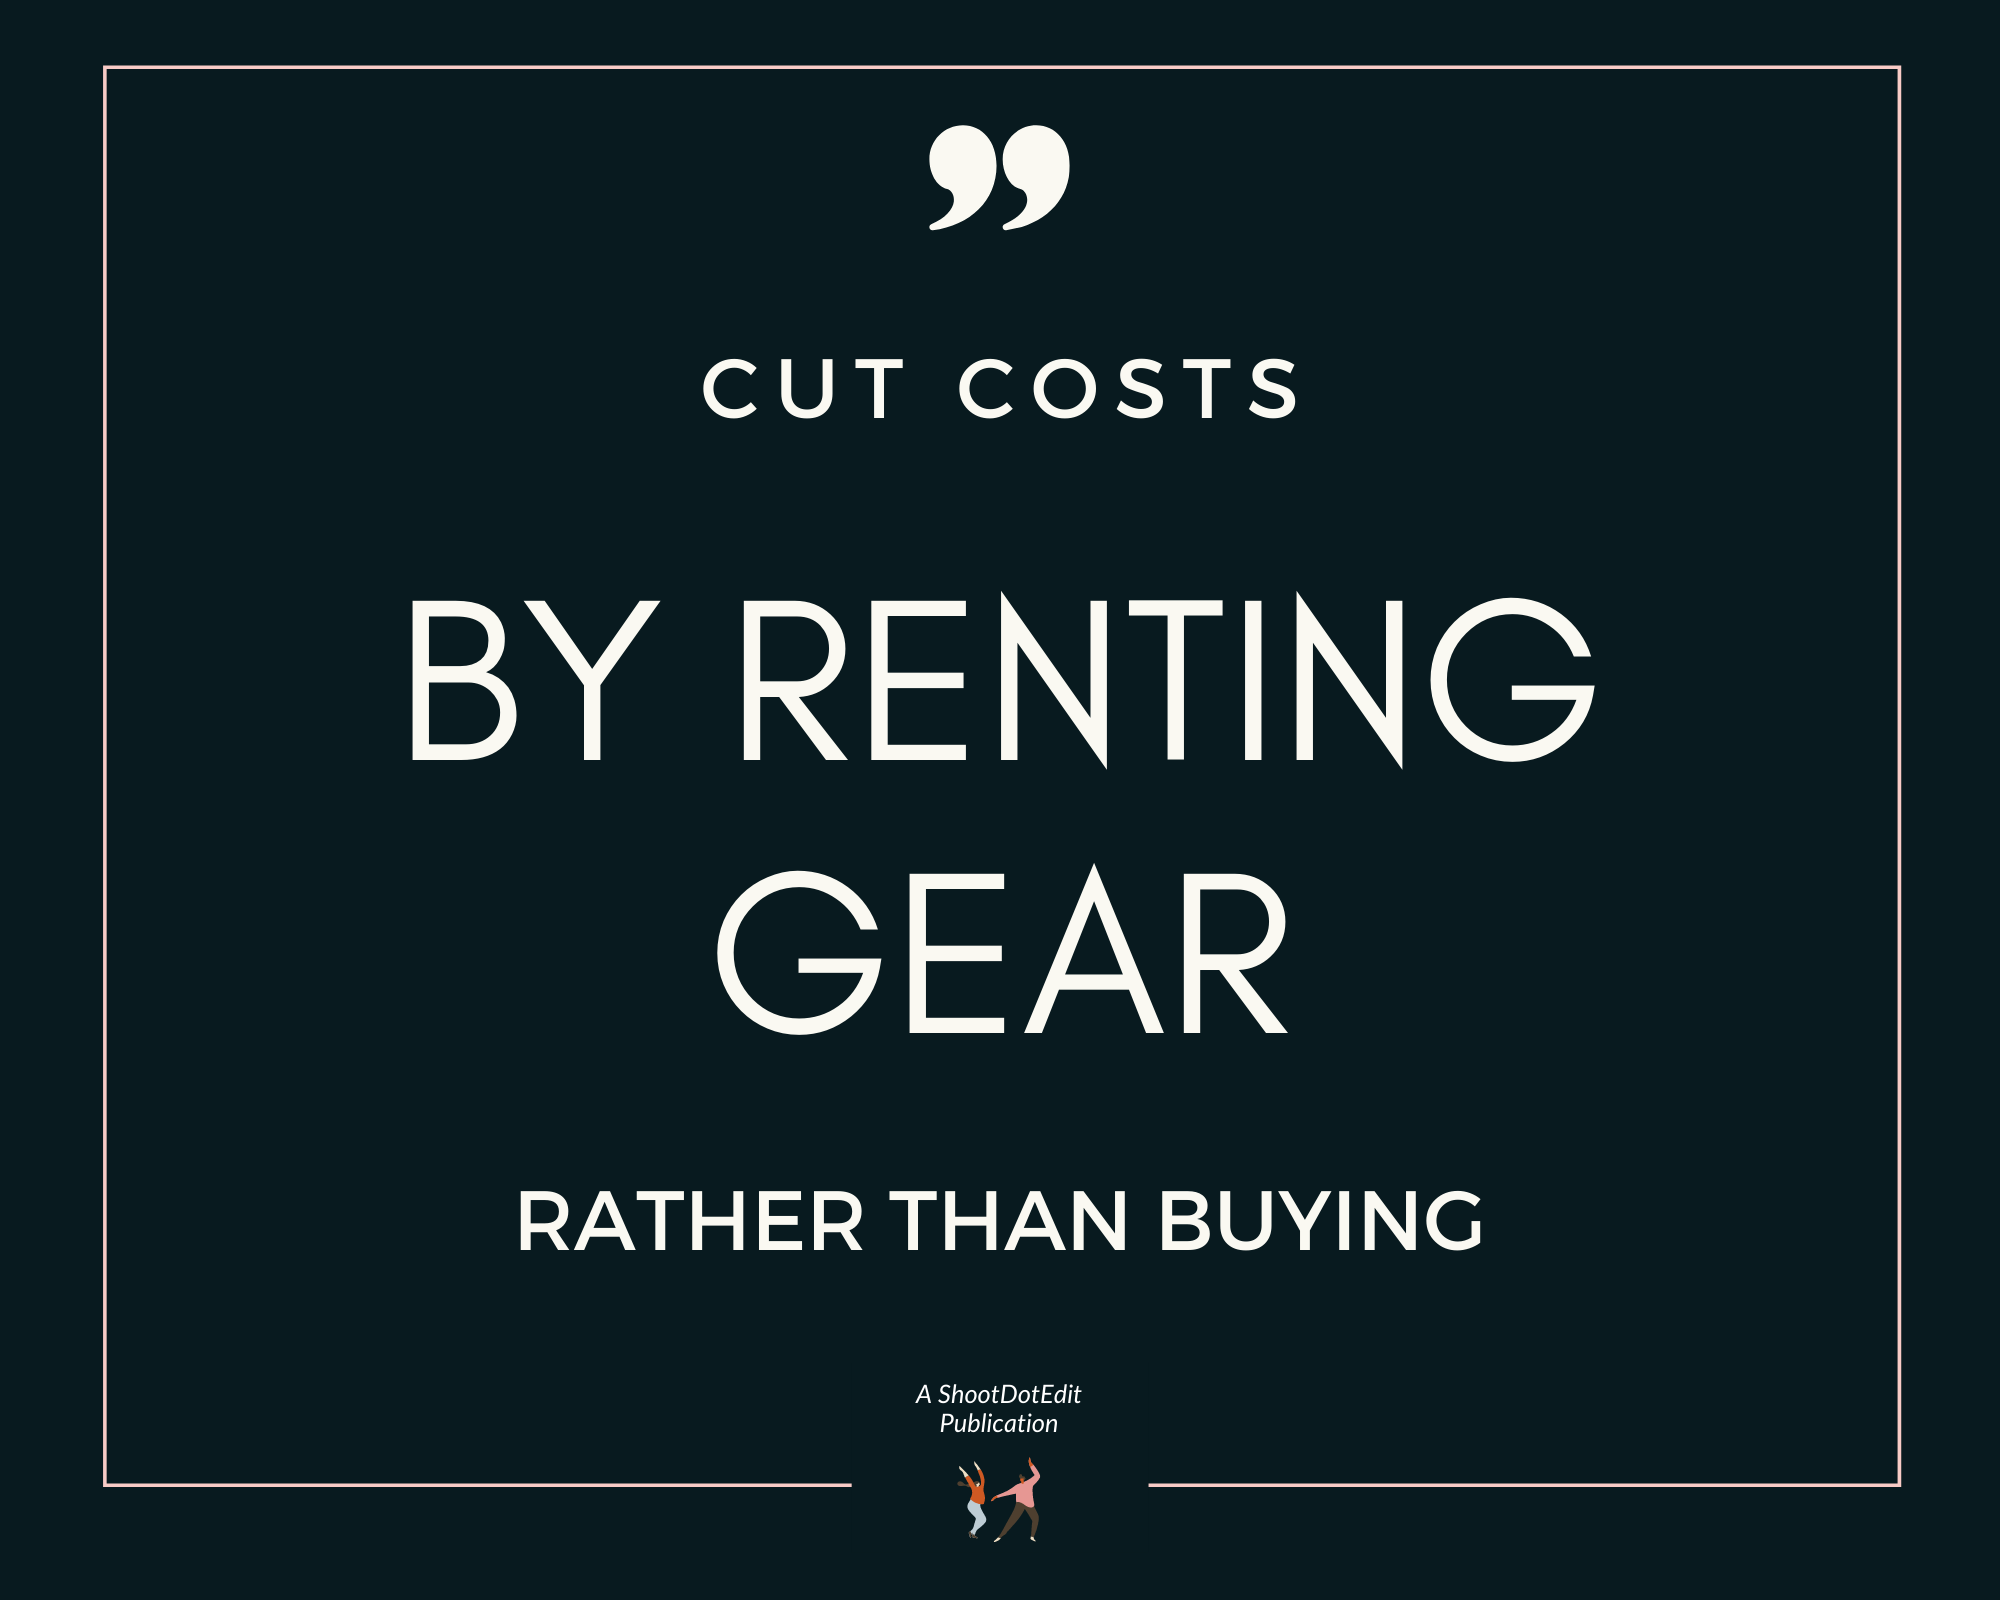 Infographic stating cut costs by renting gear rather than buying